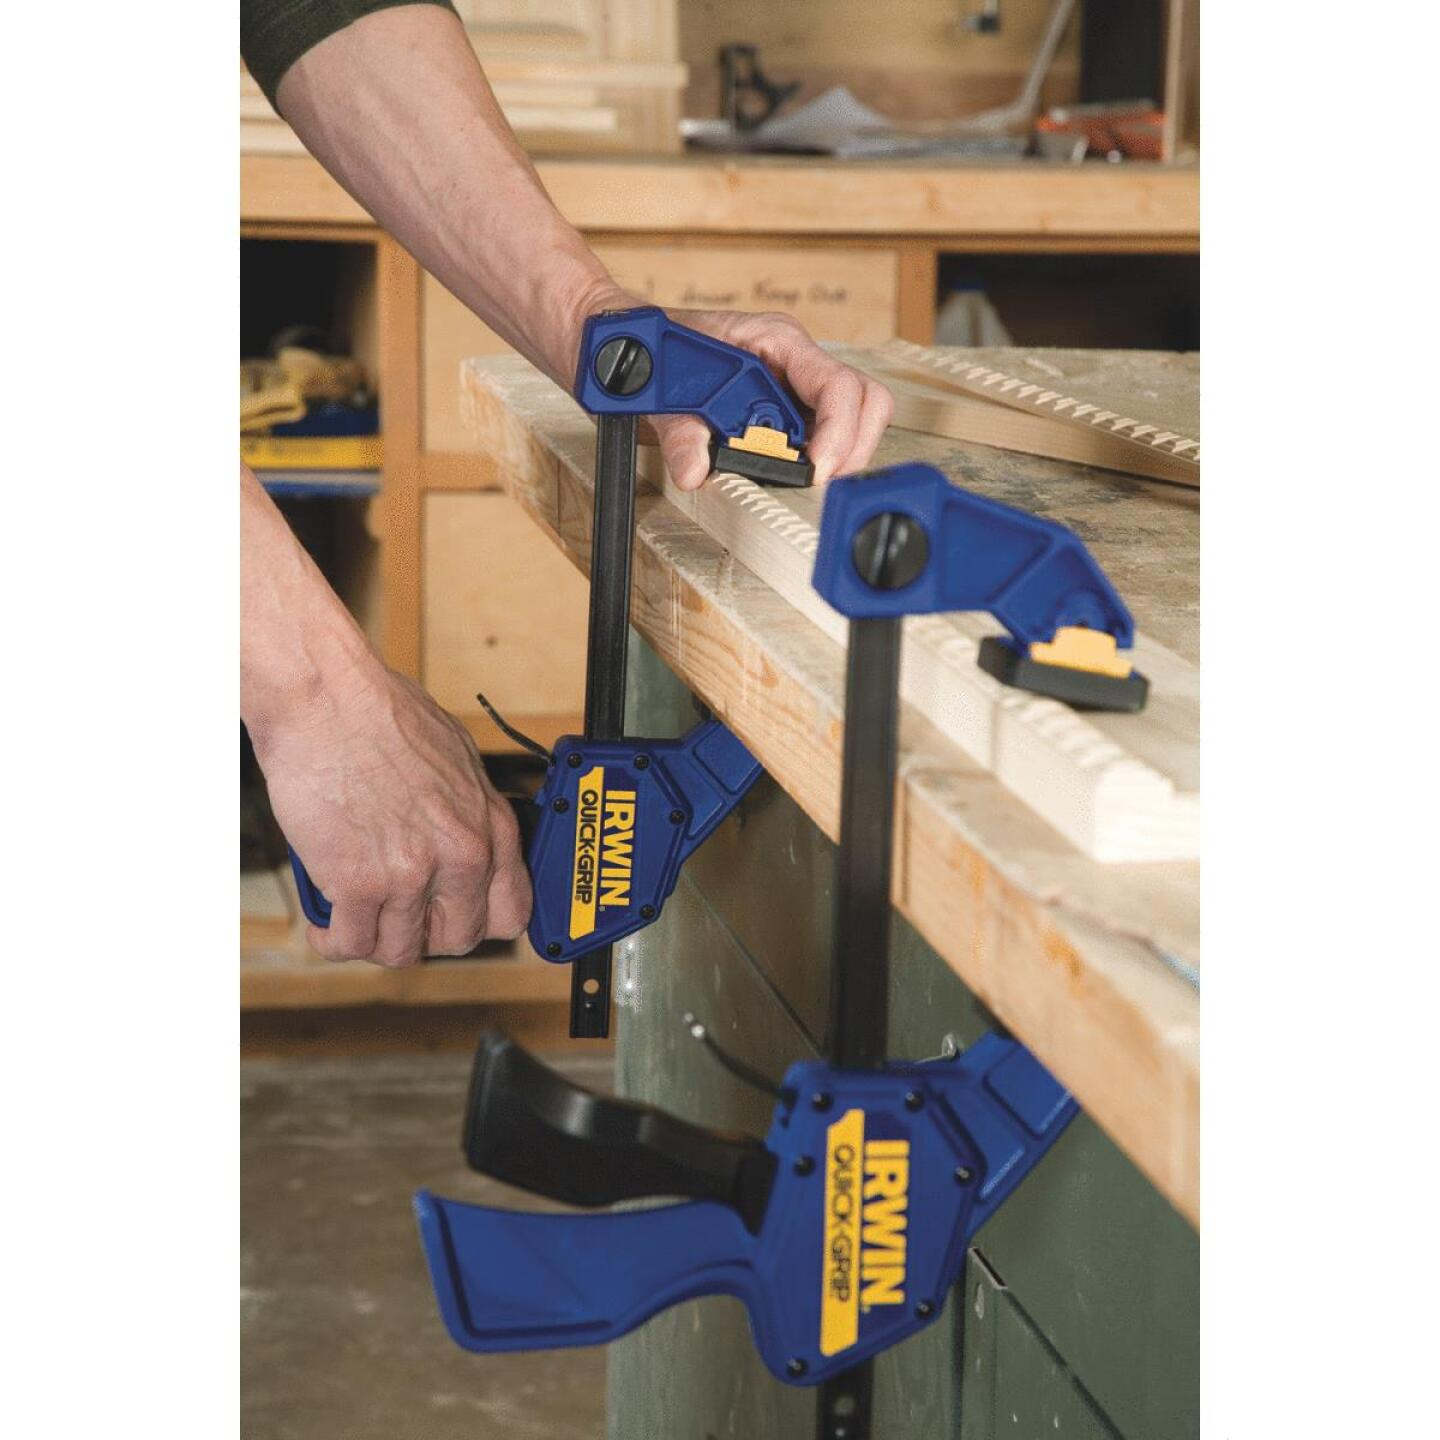 Irwin Quick-Grip 12 In. x 3-1/4 In. One-Hand Bar Clamp Image 5